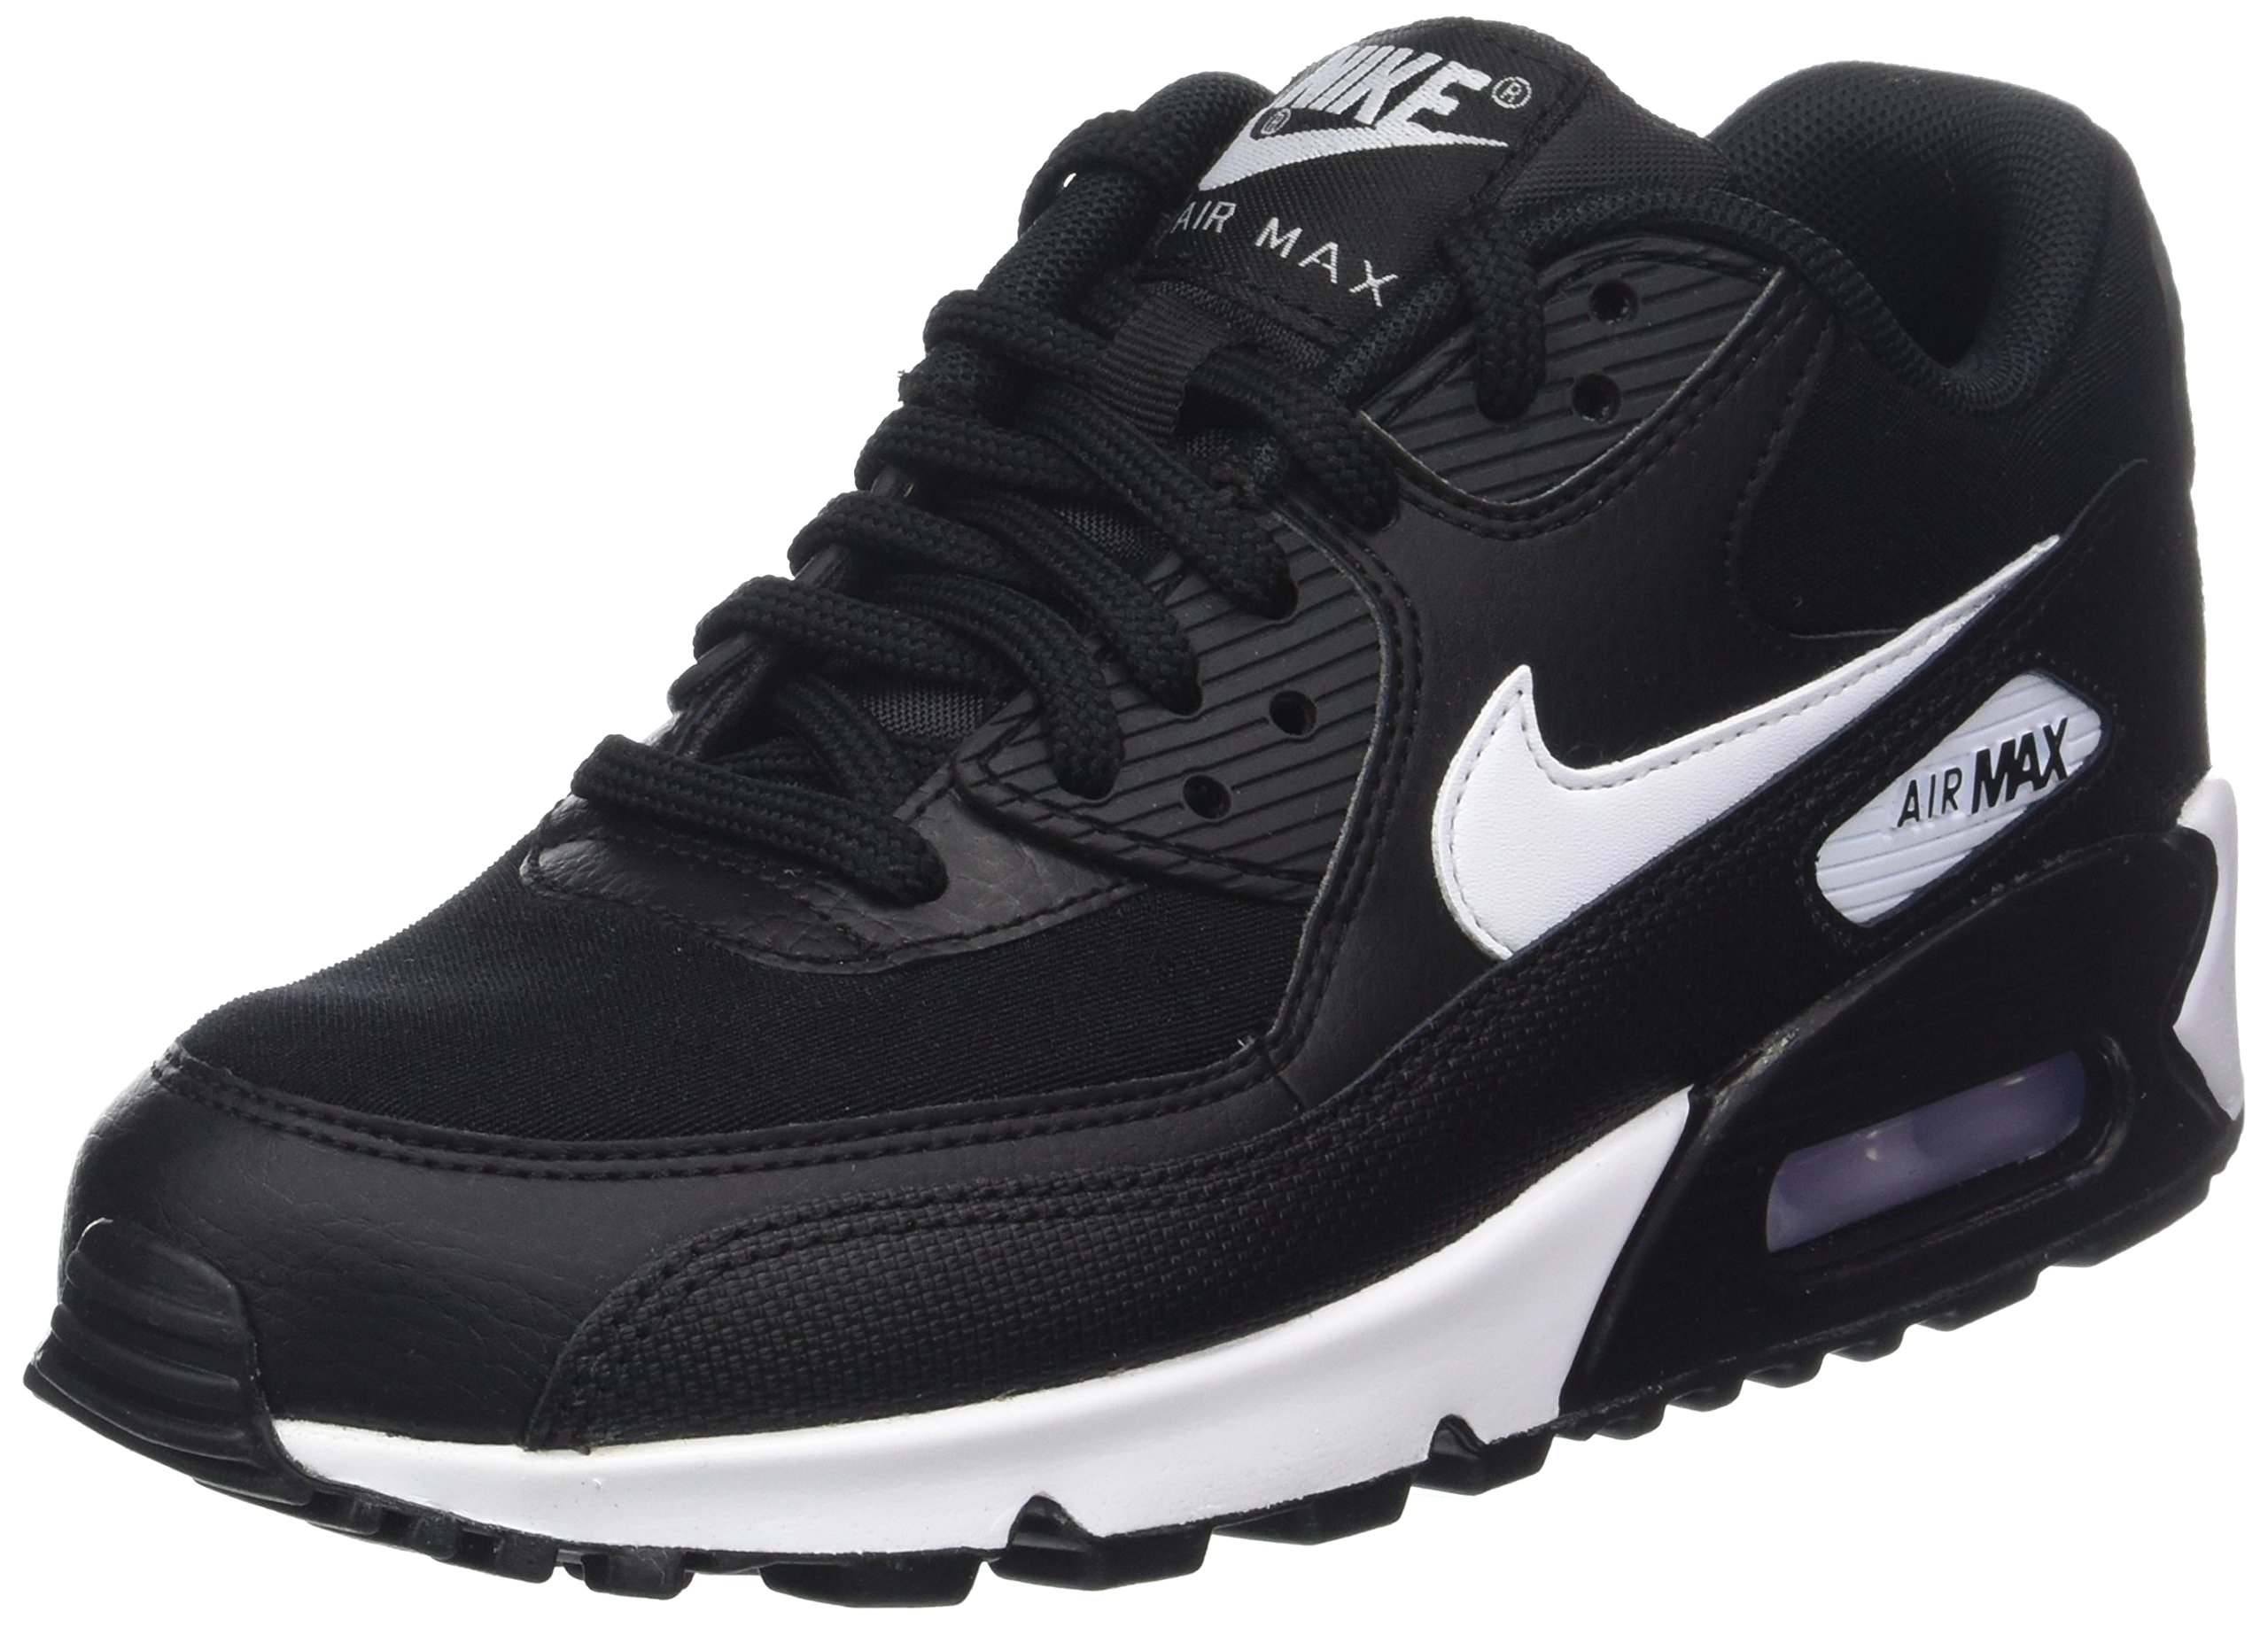 Nike Womens Air Max 90 Black White Leather Trainers 9.5 US